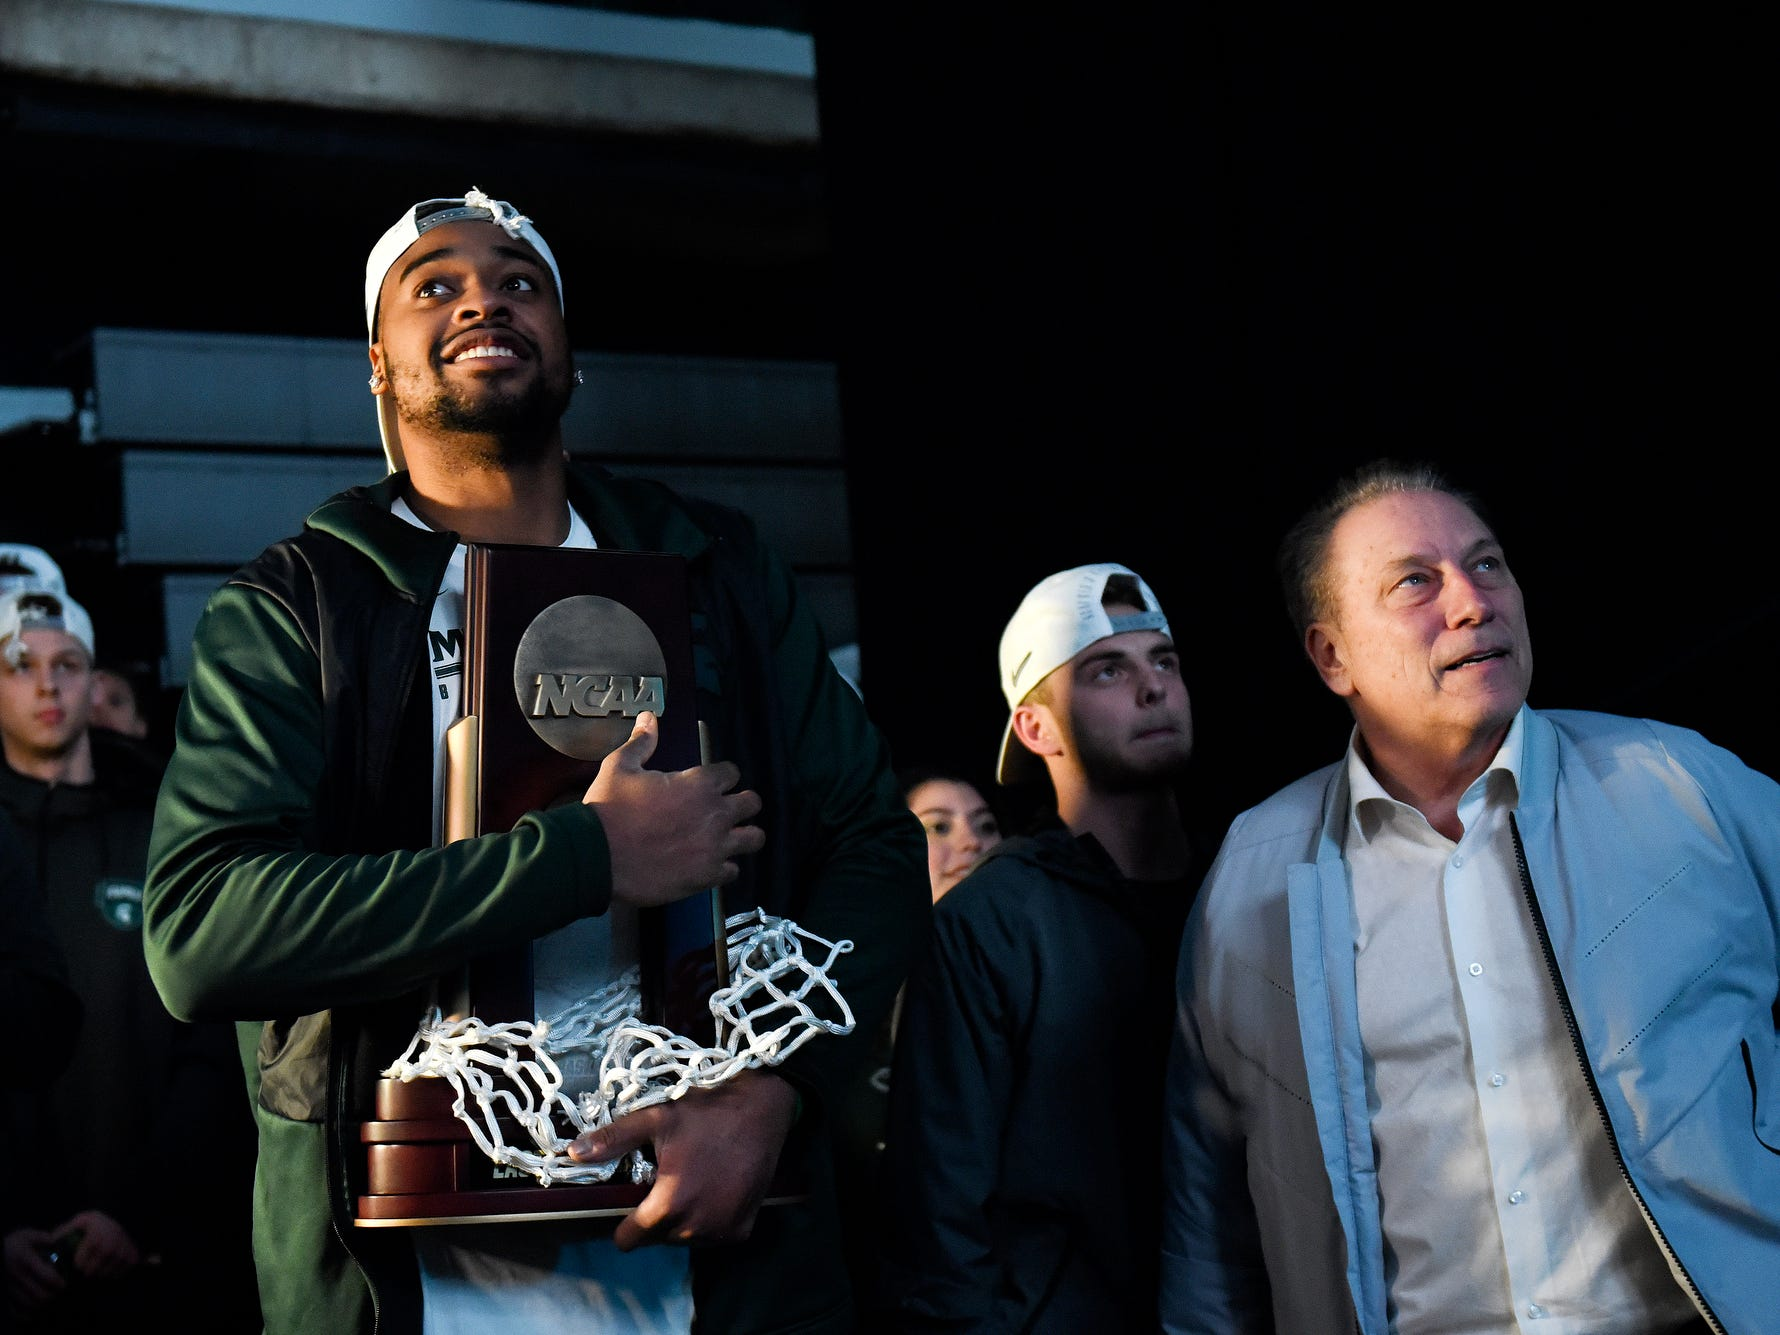 Michigan State's Nick Ward, left, holds the East Regional Championship trophy while he and head coach Tom Izzo, right, watch a video tribute to the team backstage during a rally after MSU's victory over Duke on Sunday, March 31, 2019, at the Breslin Center in East Lansing. The Spartans beat Duke 68-67 to reach the Final Four.